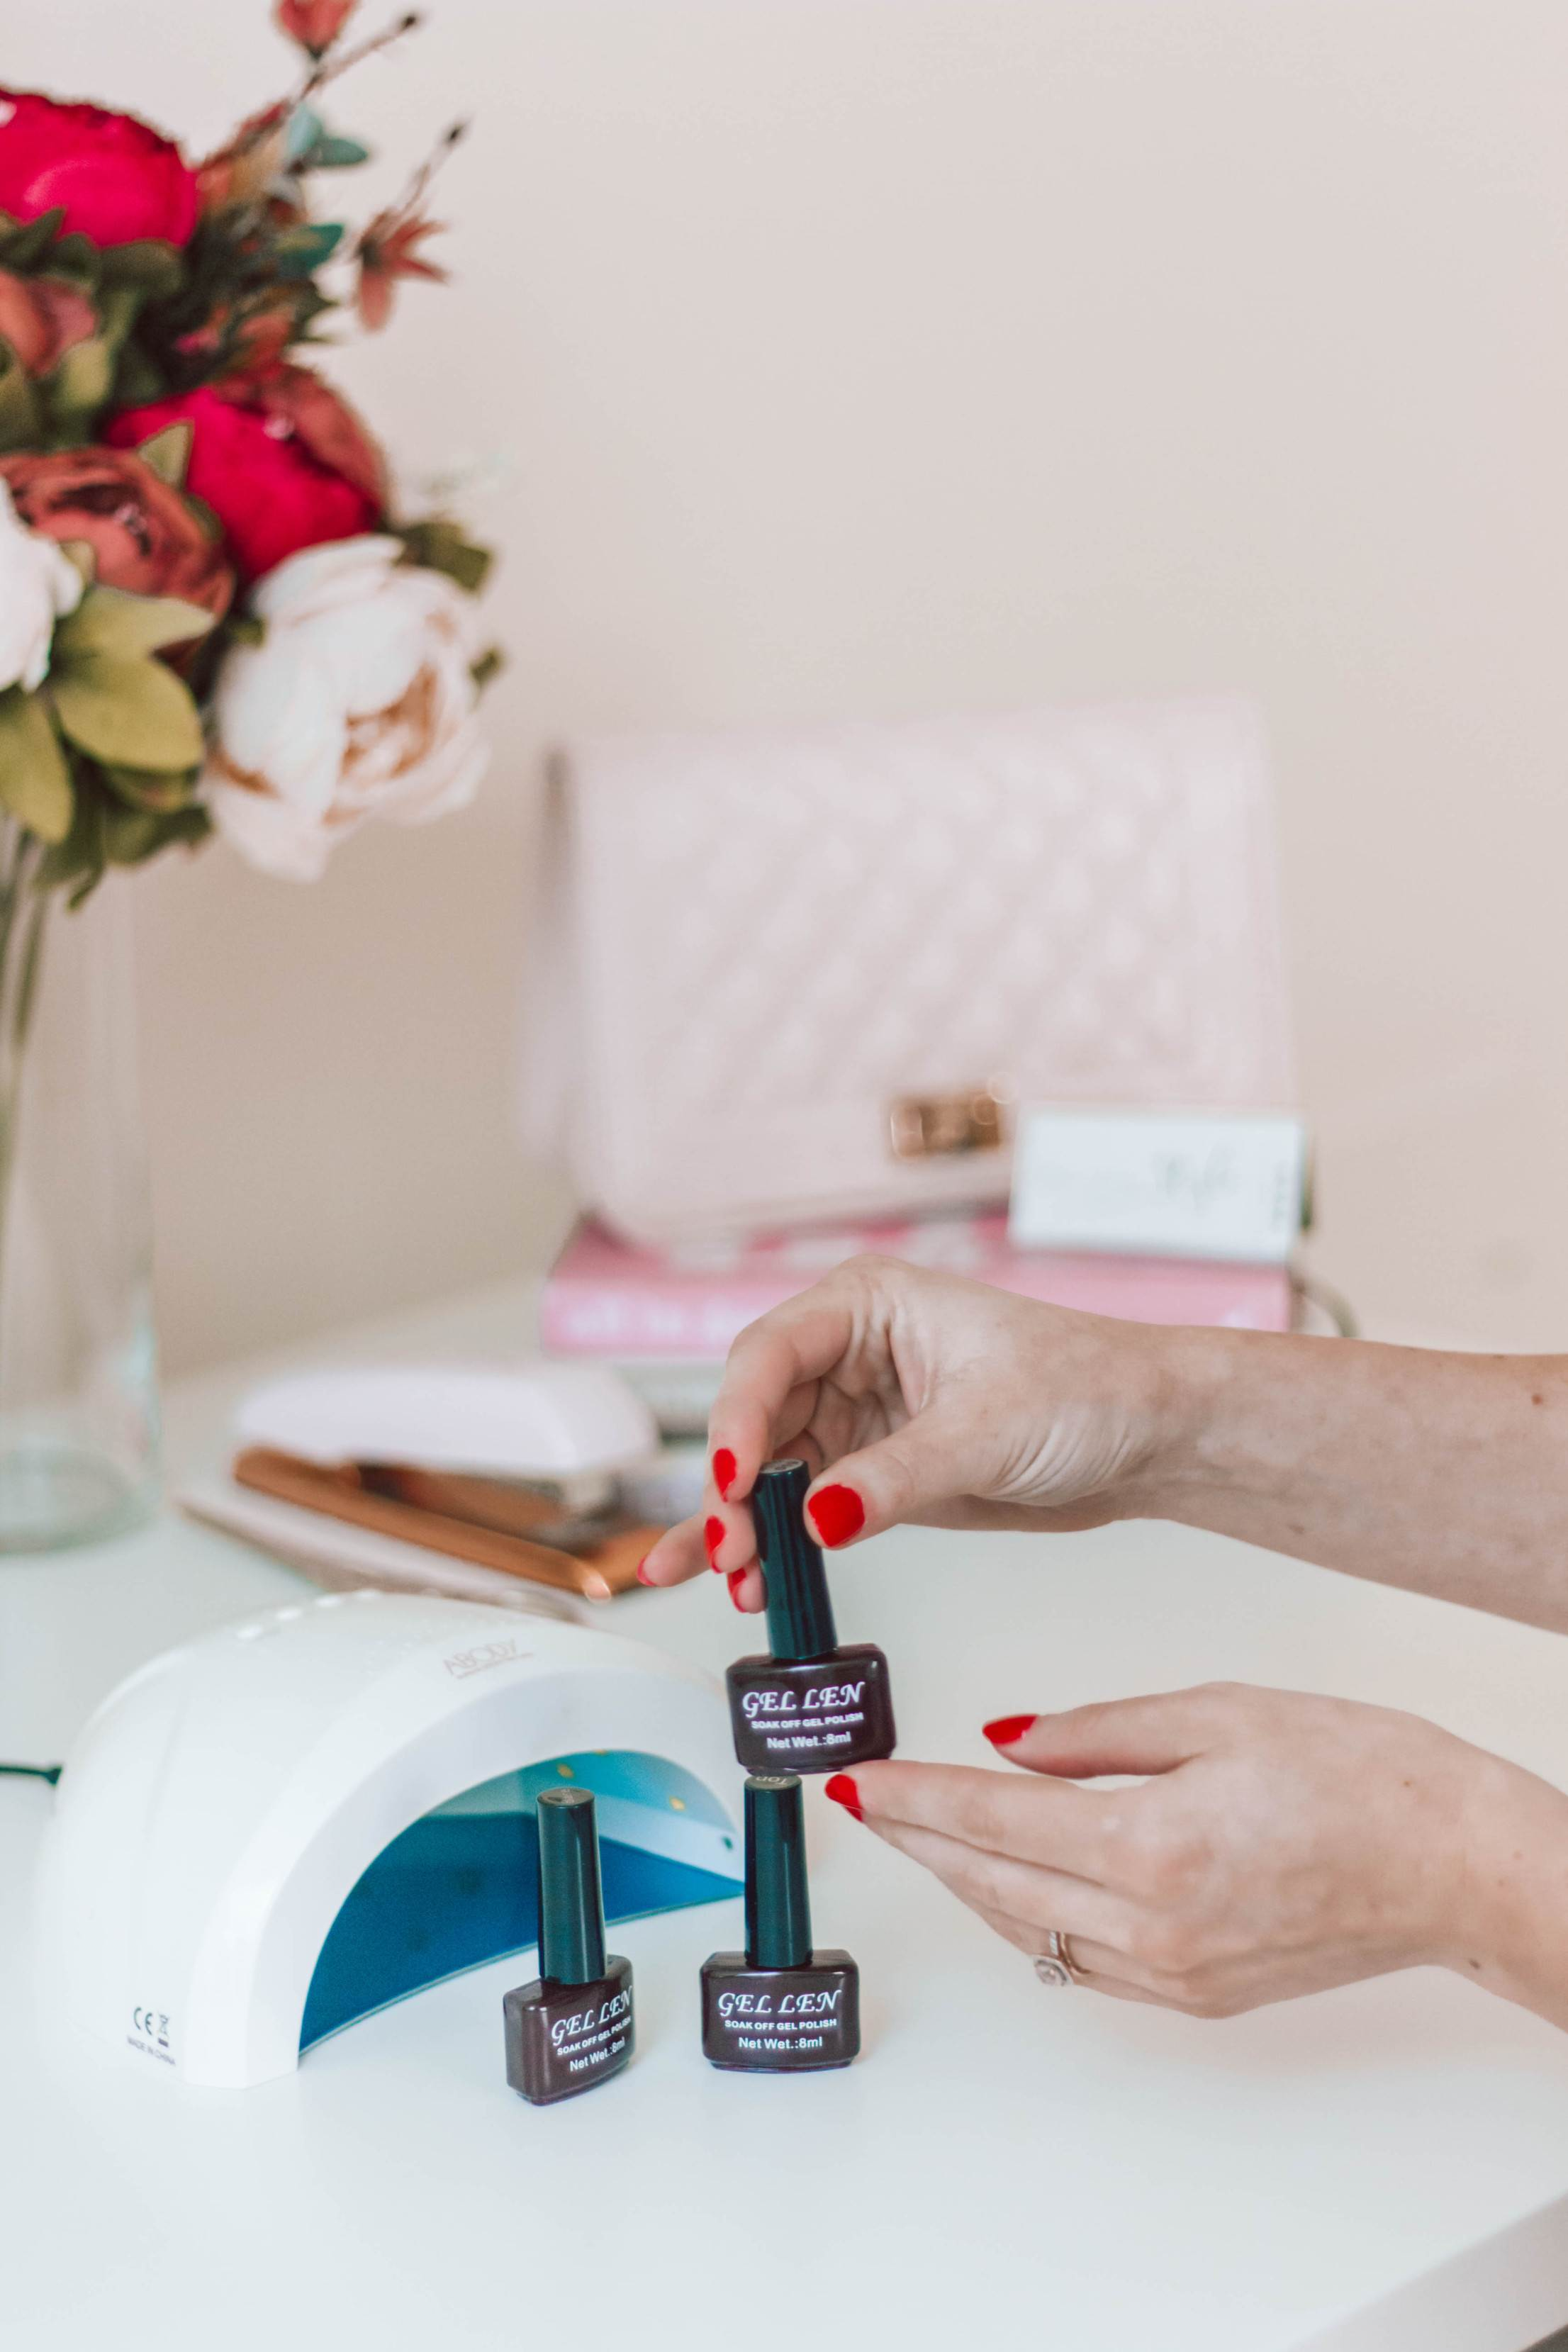 At-Home Gel Manicures (And How to Remove Them)